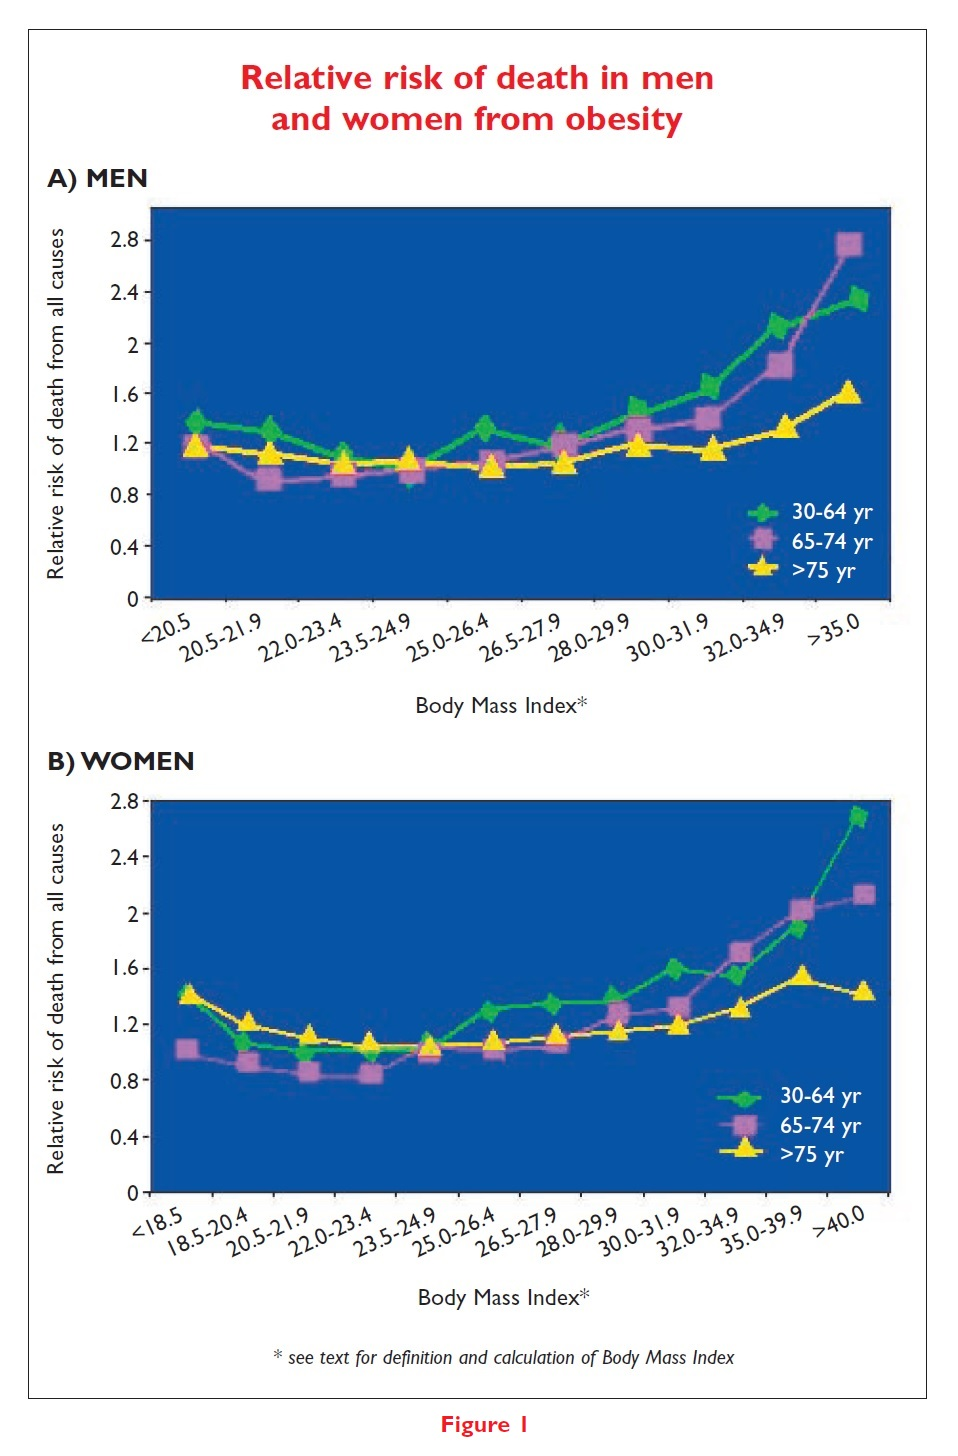 Figure 1 Relative risk of death in men and women from obesity graphs